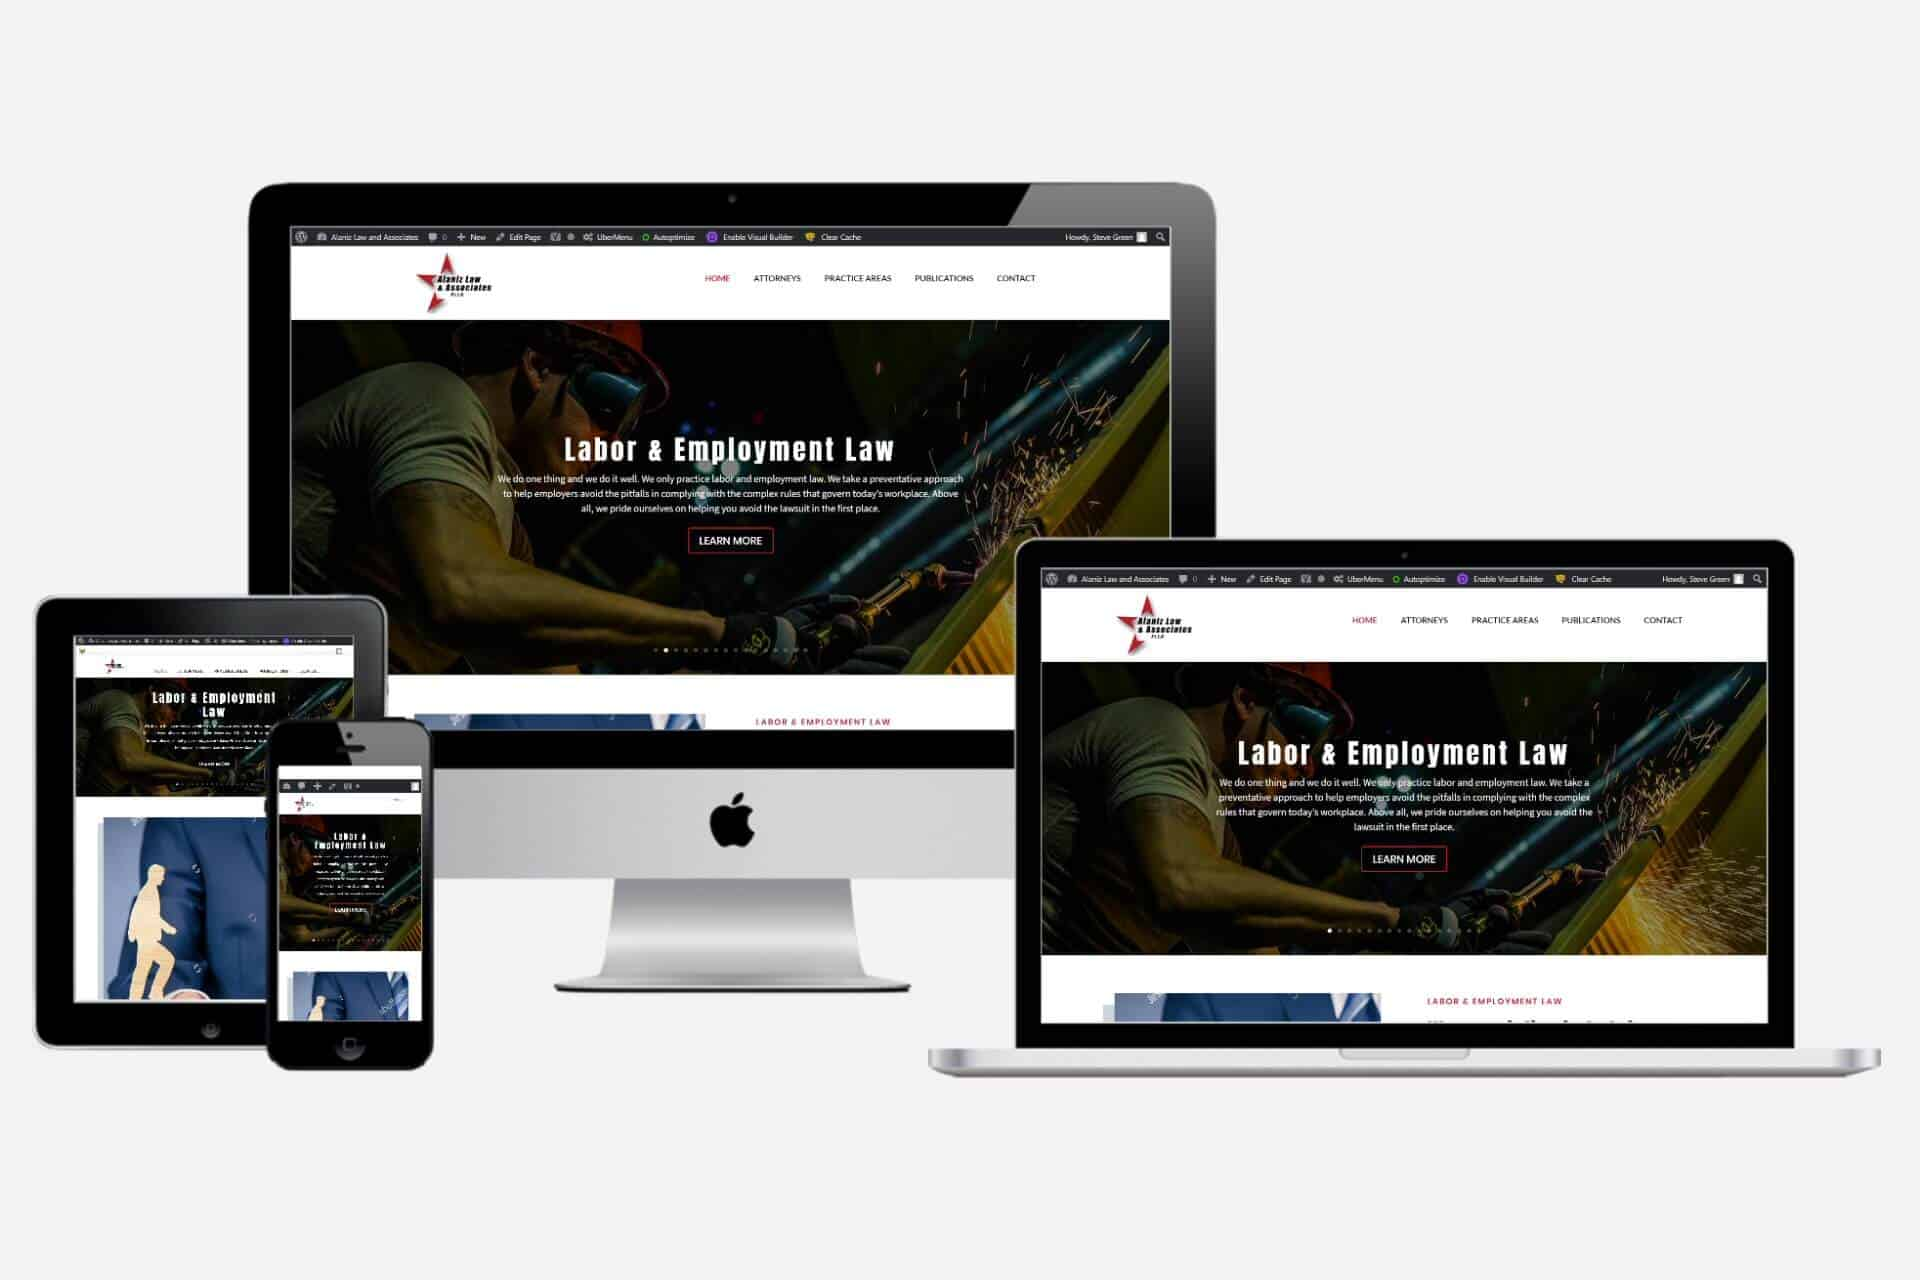 Alaniz Law & Associates Website Design by WizardsWebs Design LLC